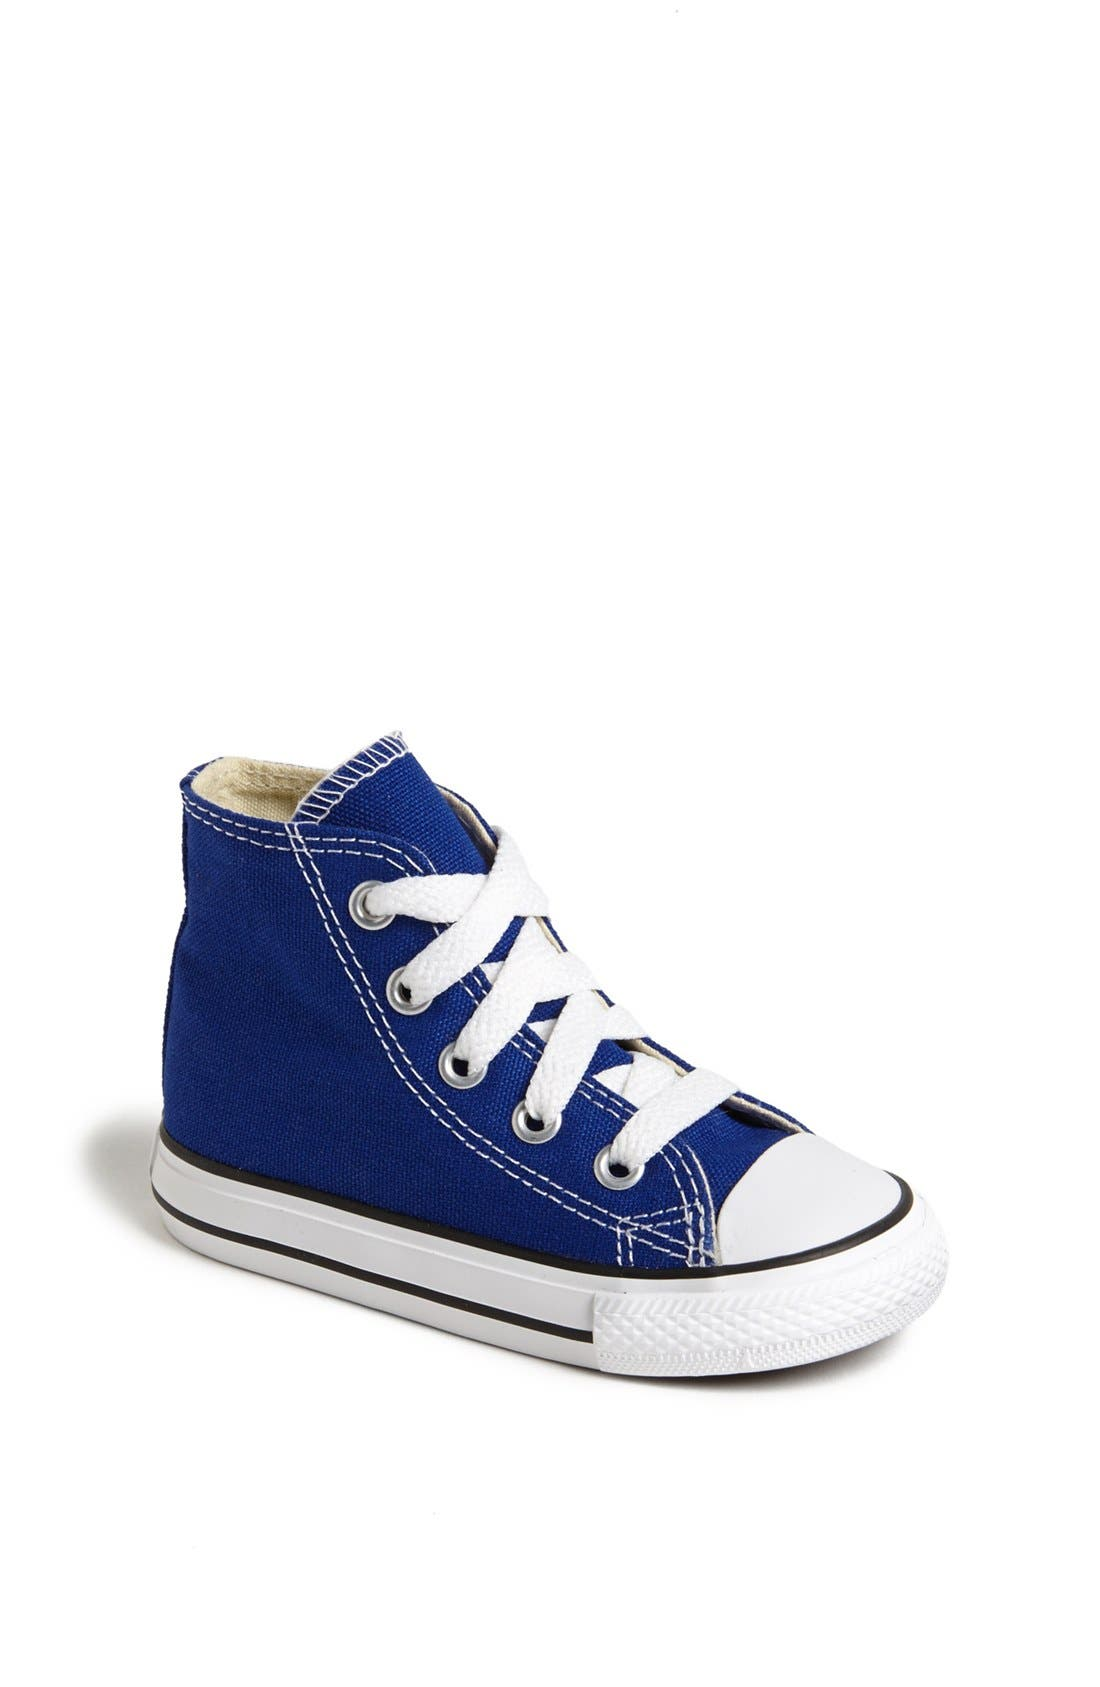 Alternate Image 1 Selected - Converse Chuck Taylor® All Star® High Top Sneaker (Baby, Walker, Toddler & Little Kid)